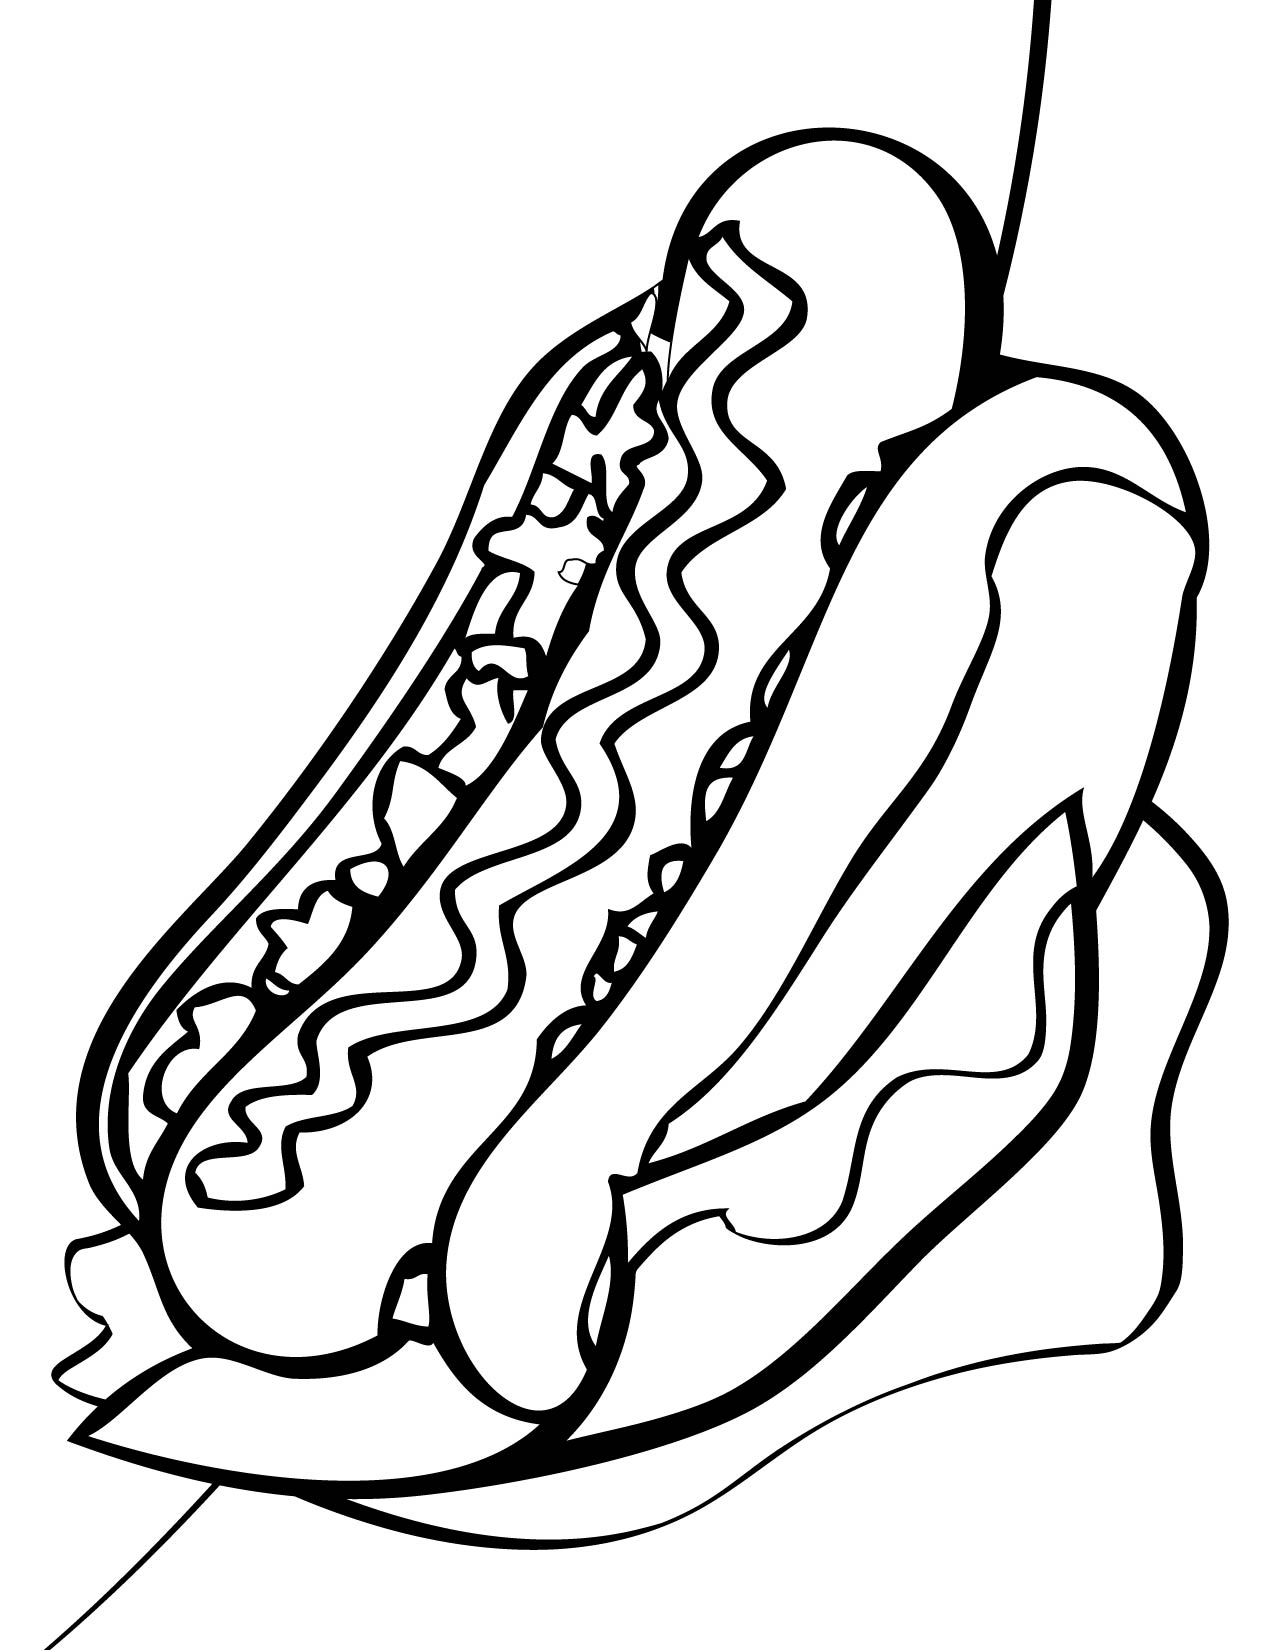 Free Coloring Pages Of Hot Dogs